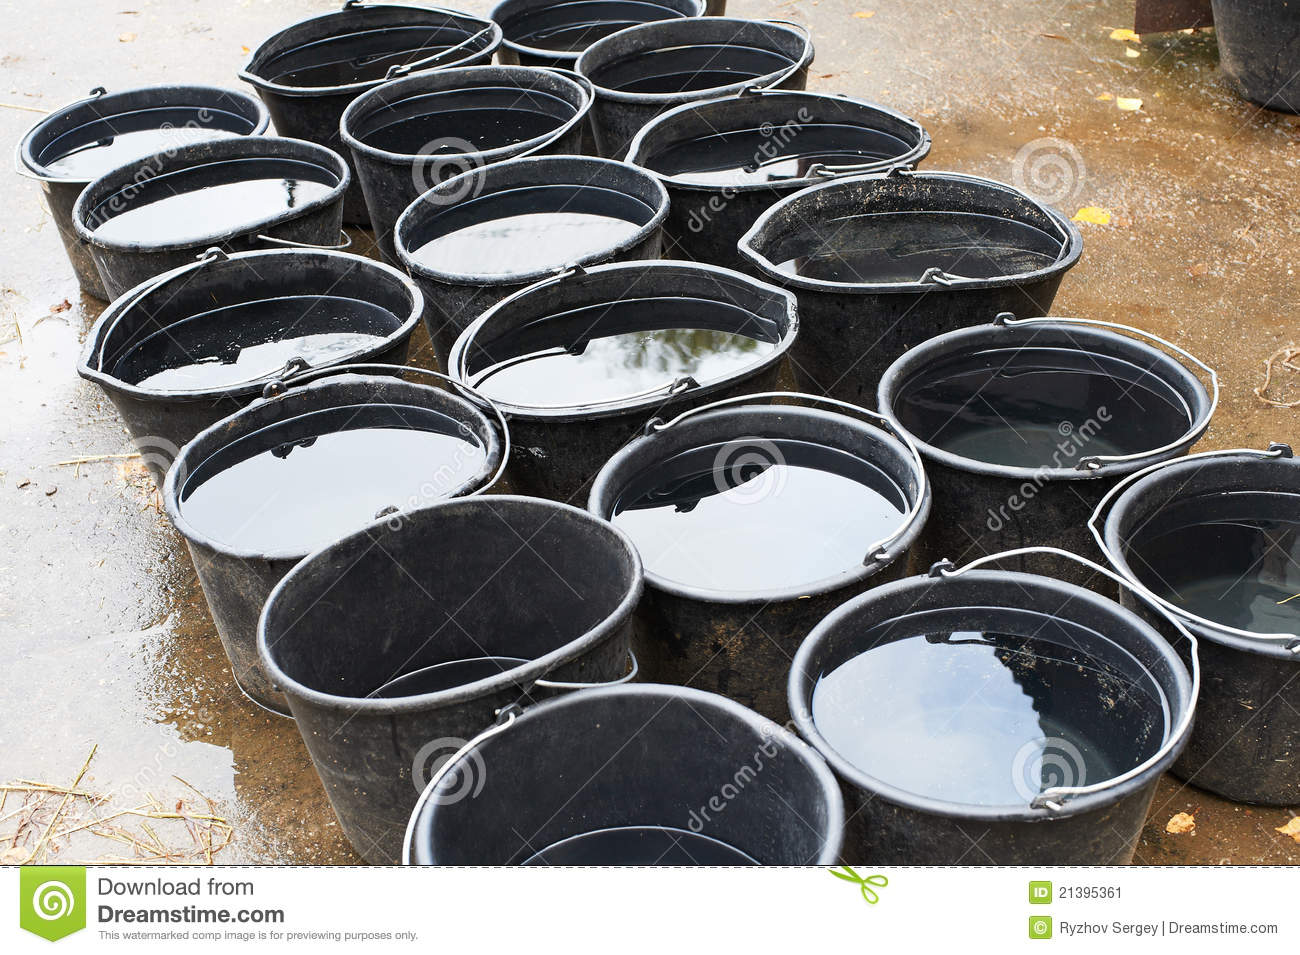 Buckets Of Water For Drinking Horses Stock Image - Image: 21395361